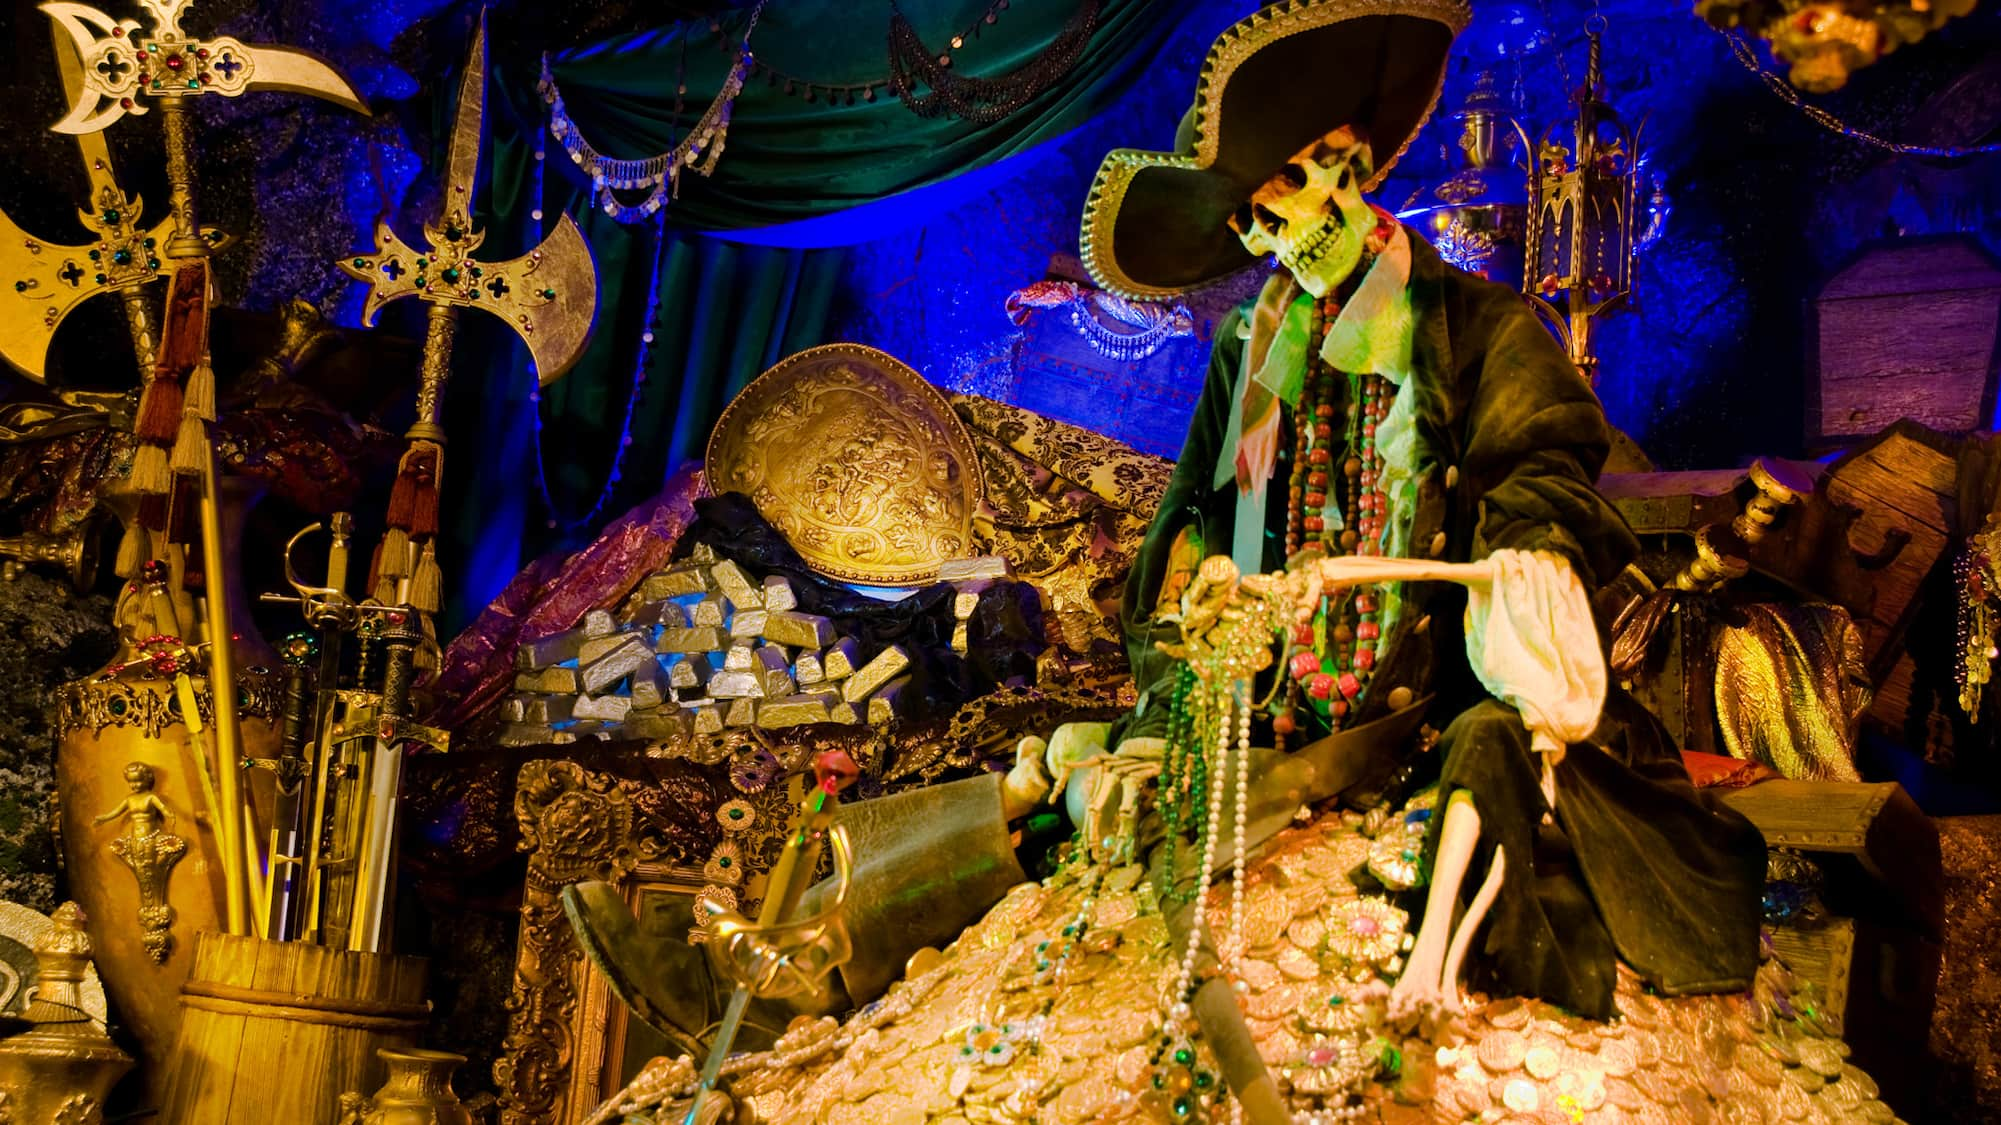 Pirates of the Caribbean | Rides & Attractions | Disneyland Park